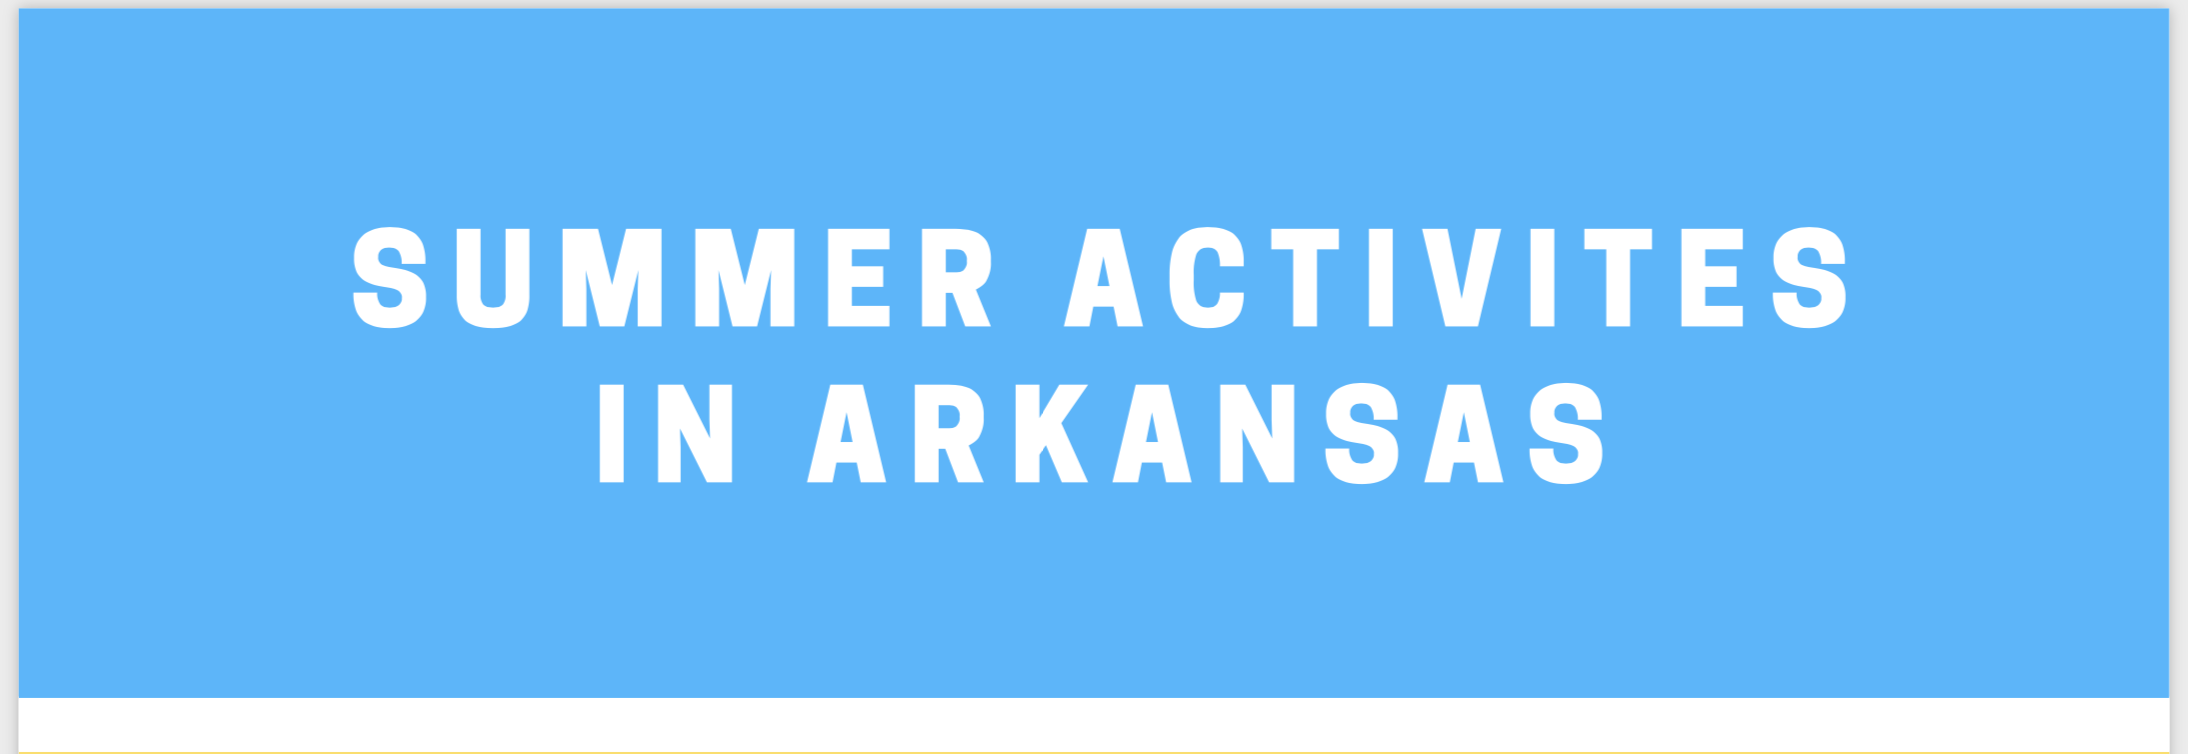 It's Summer in Arkansas